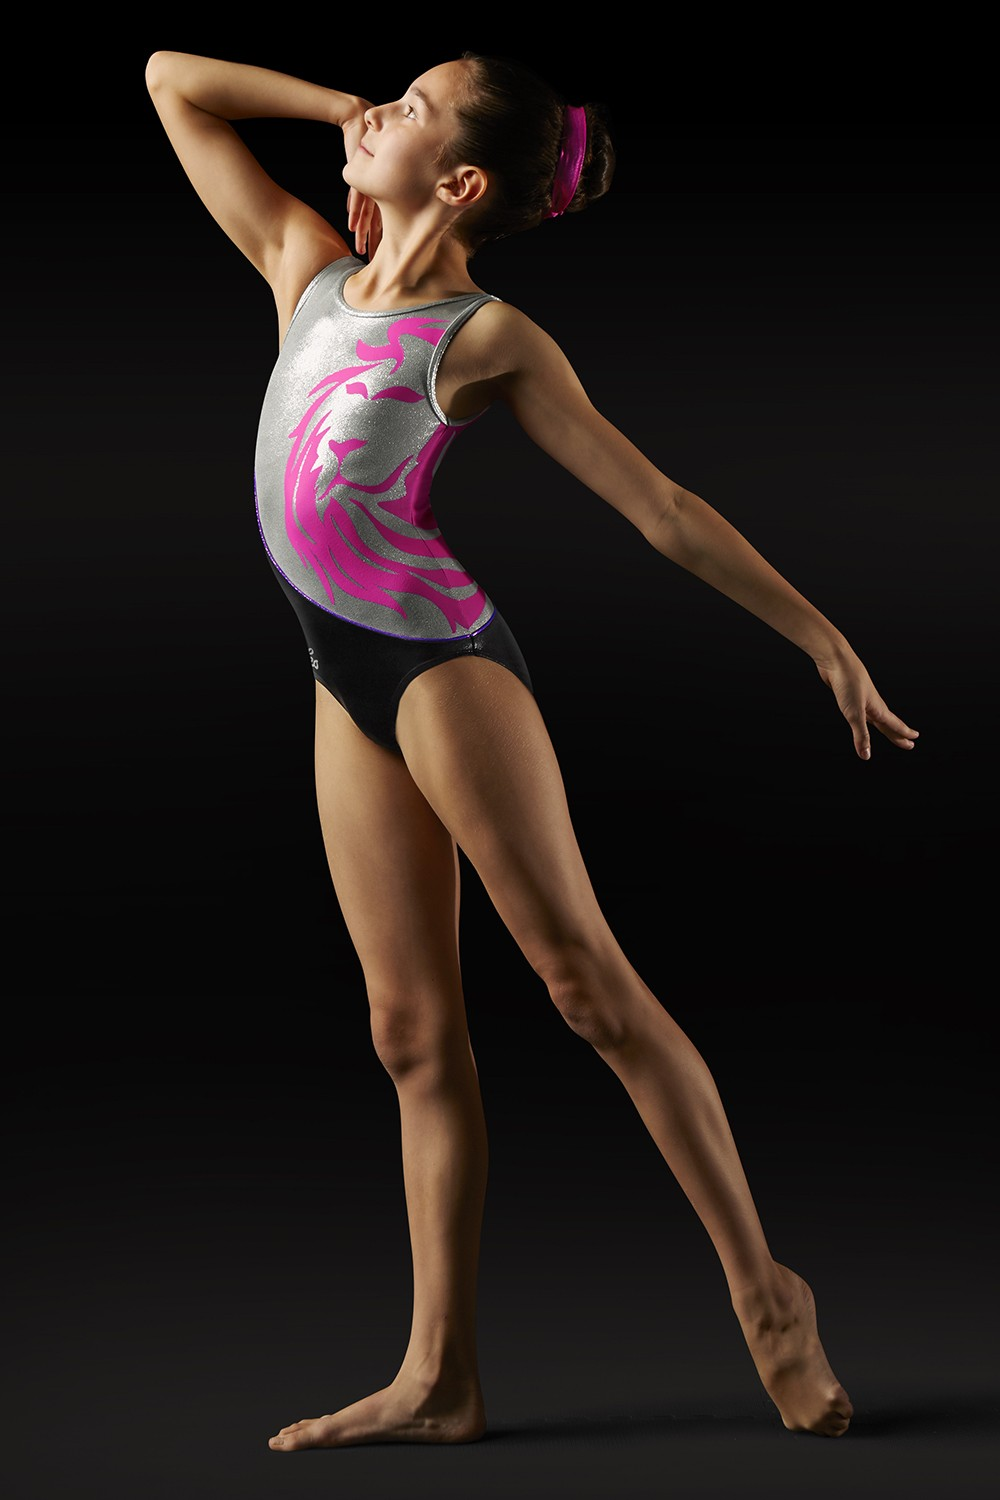 Women's Gymnastics Leotards